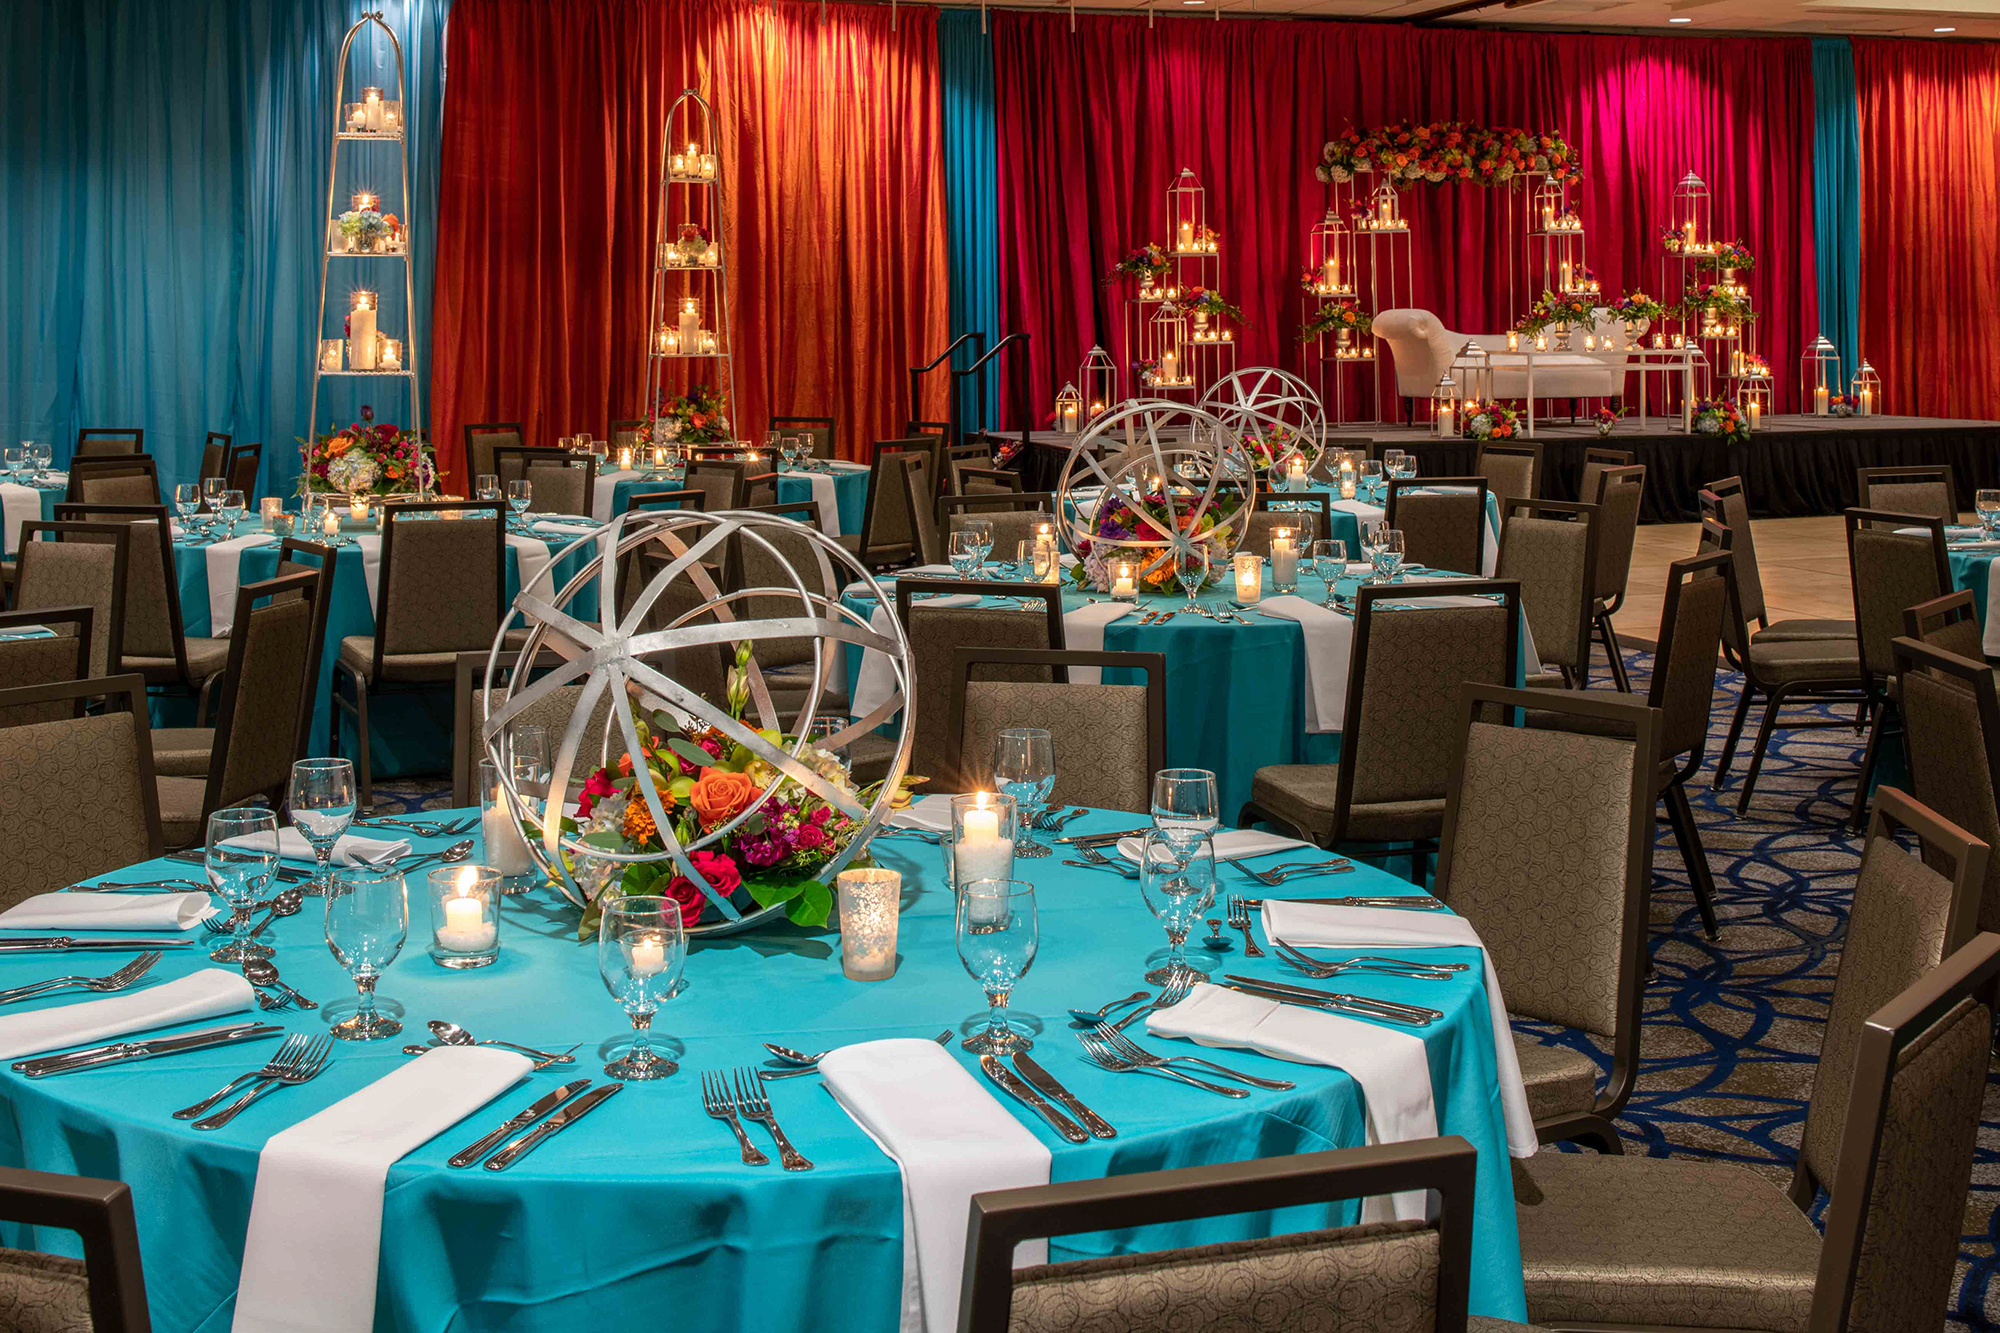 Hilton_Bellevue_Meeting_Grand_Ballroom_Wedding-0010.jpg